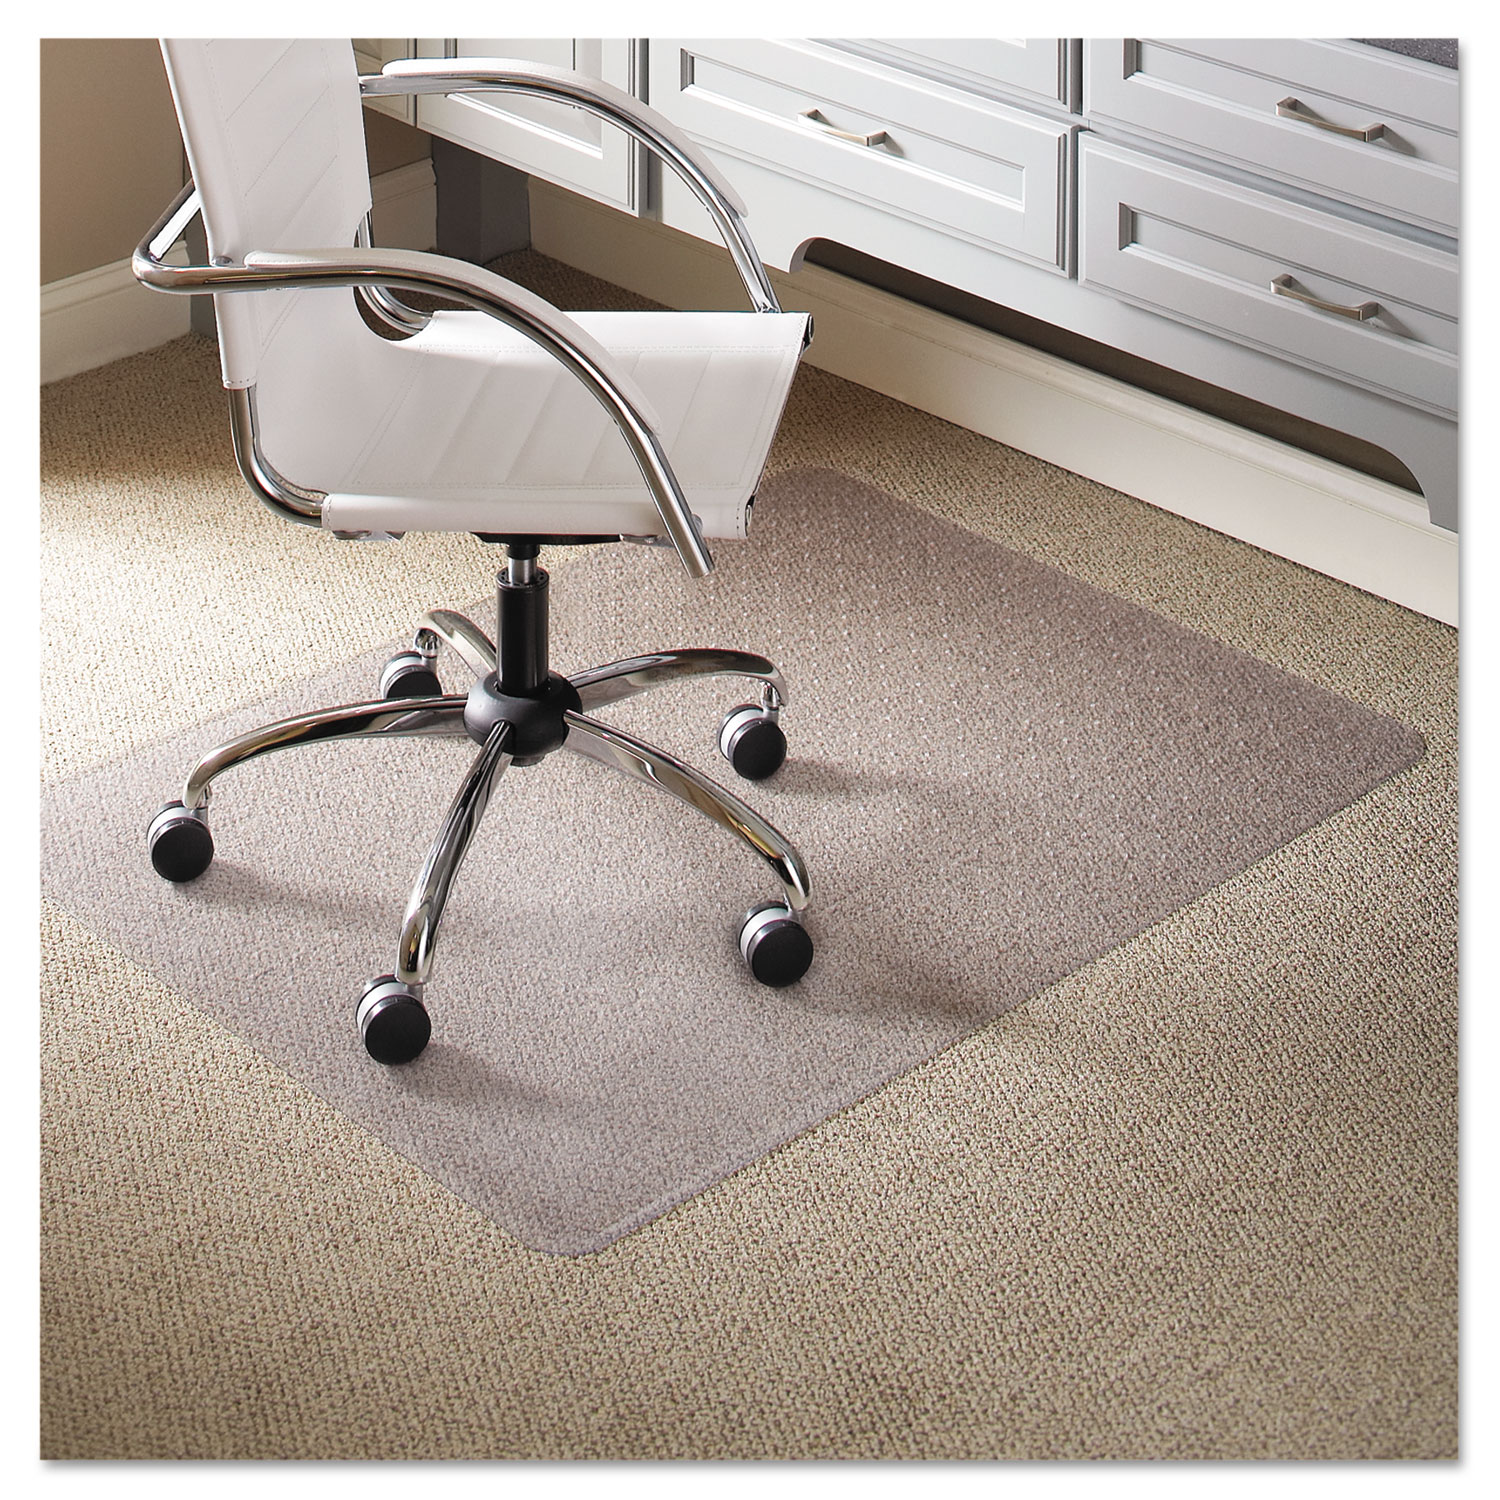 Check Out Everlife Light Use Chair Mat For Flat Pile Carpet And